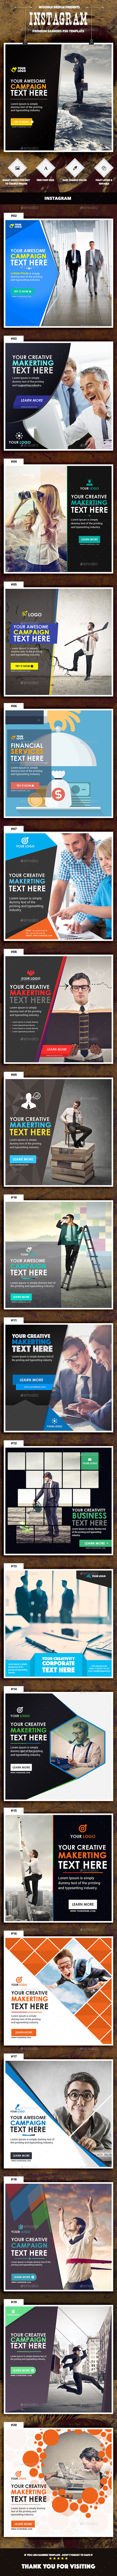 Instagram Multipurpose Banners Ads - 20 PSD - Banners & Ads Web Elements